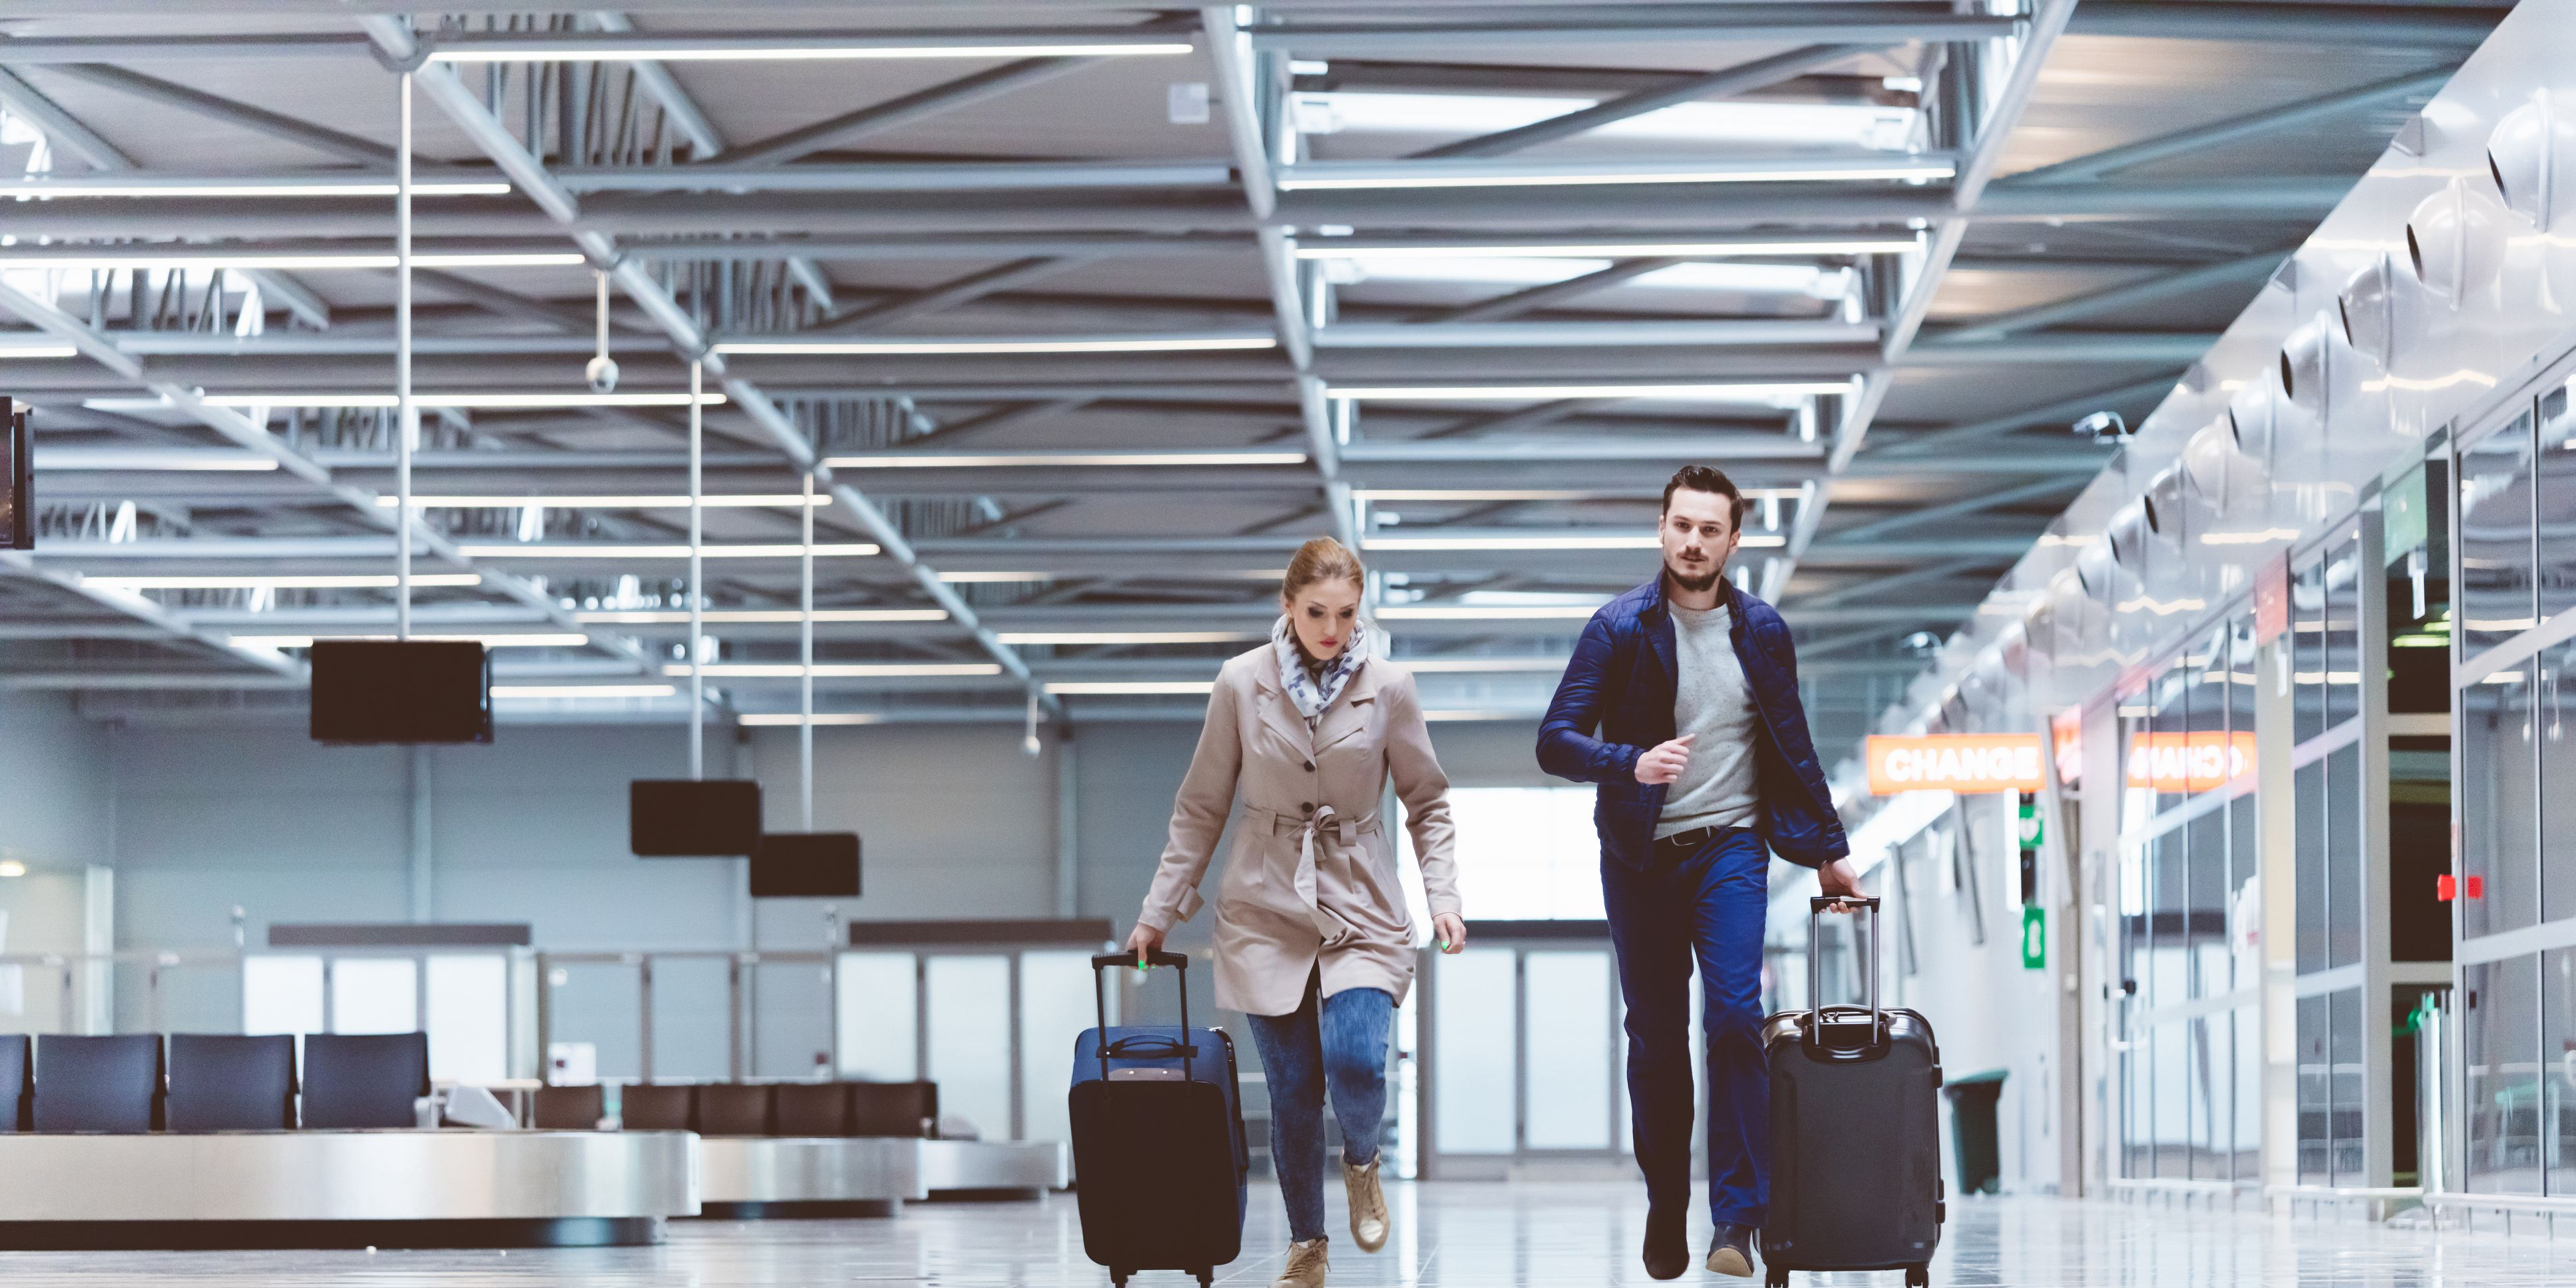 Young couple running towards boarding gate in airport